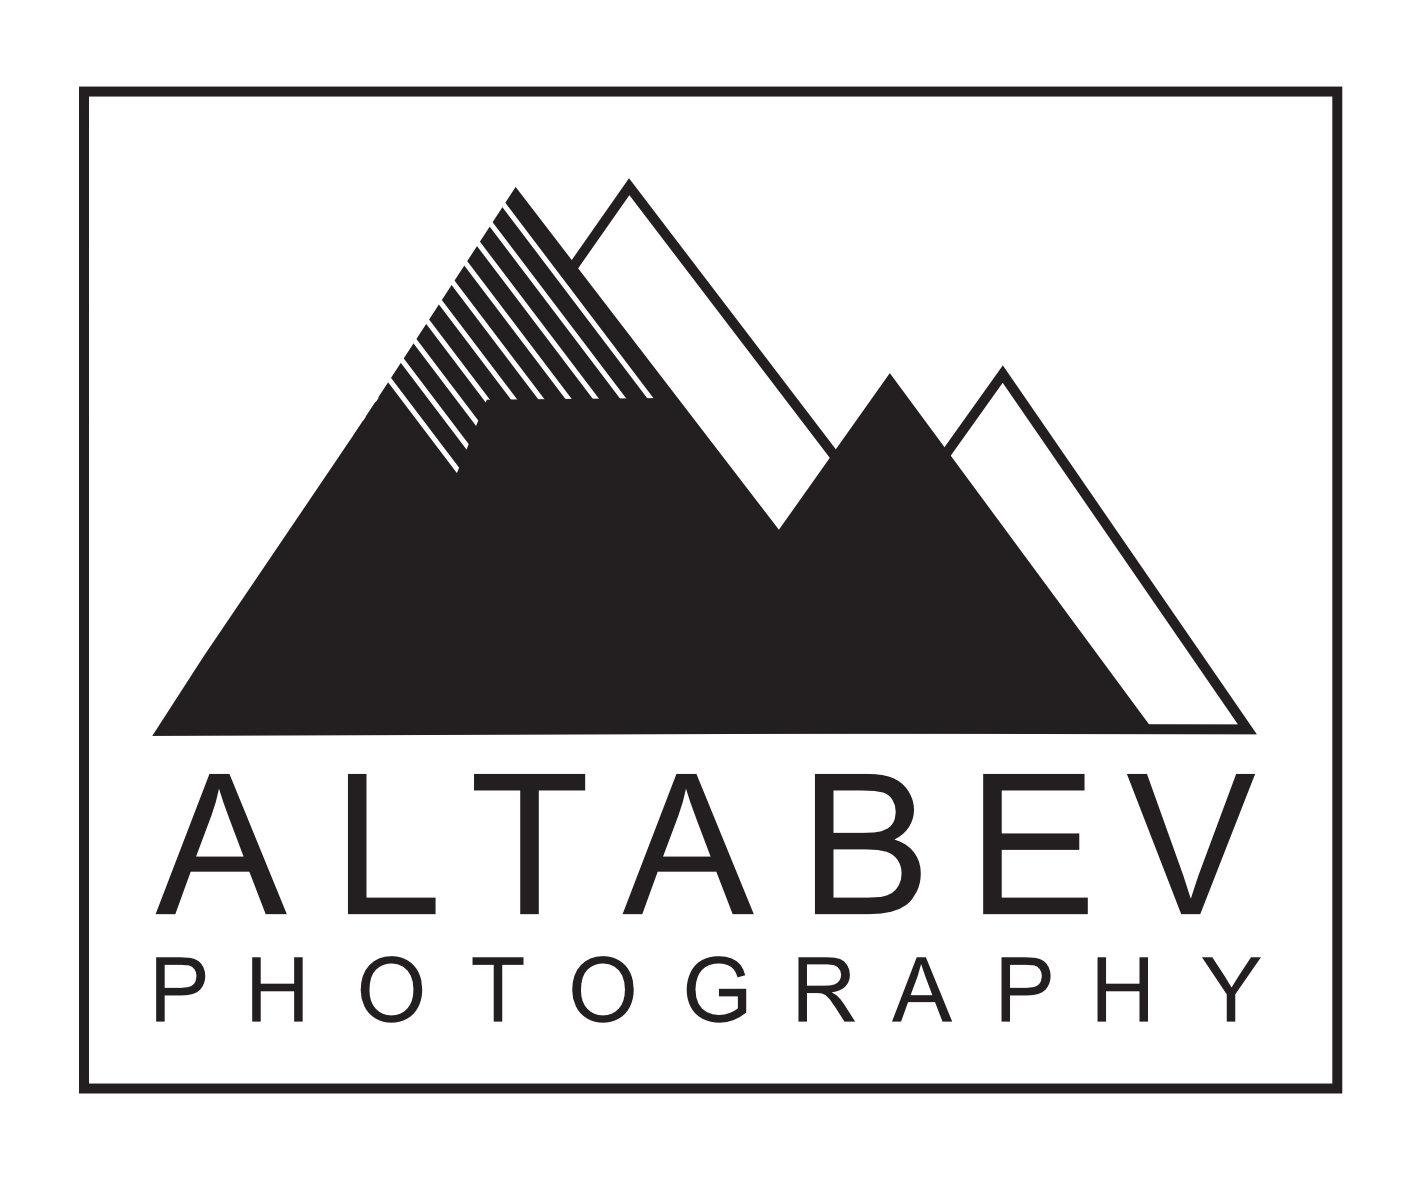 David Altabev Photography